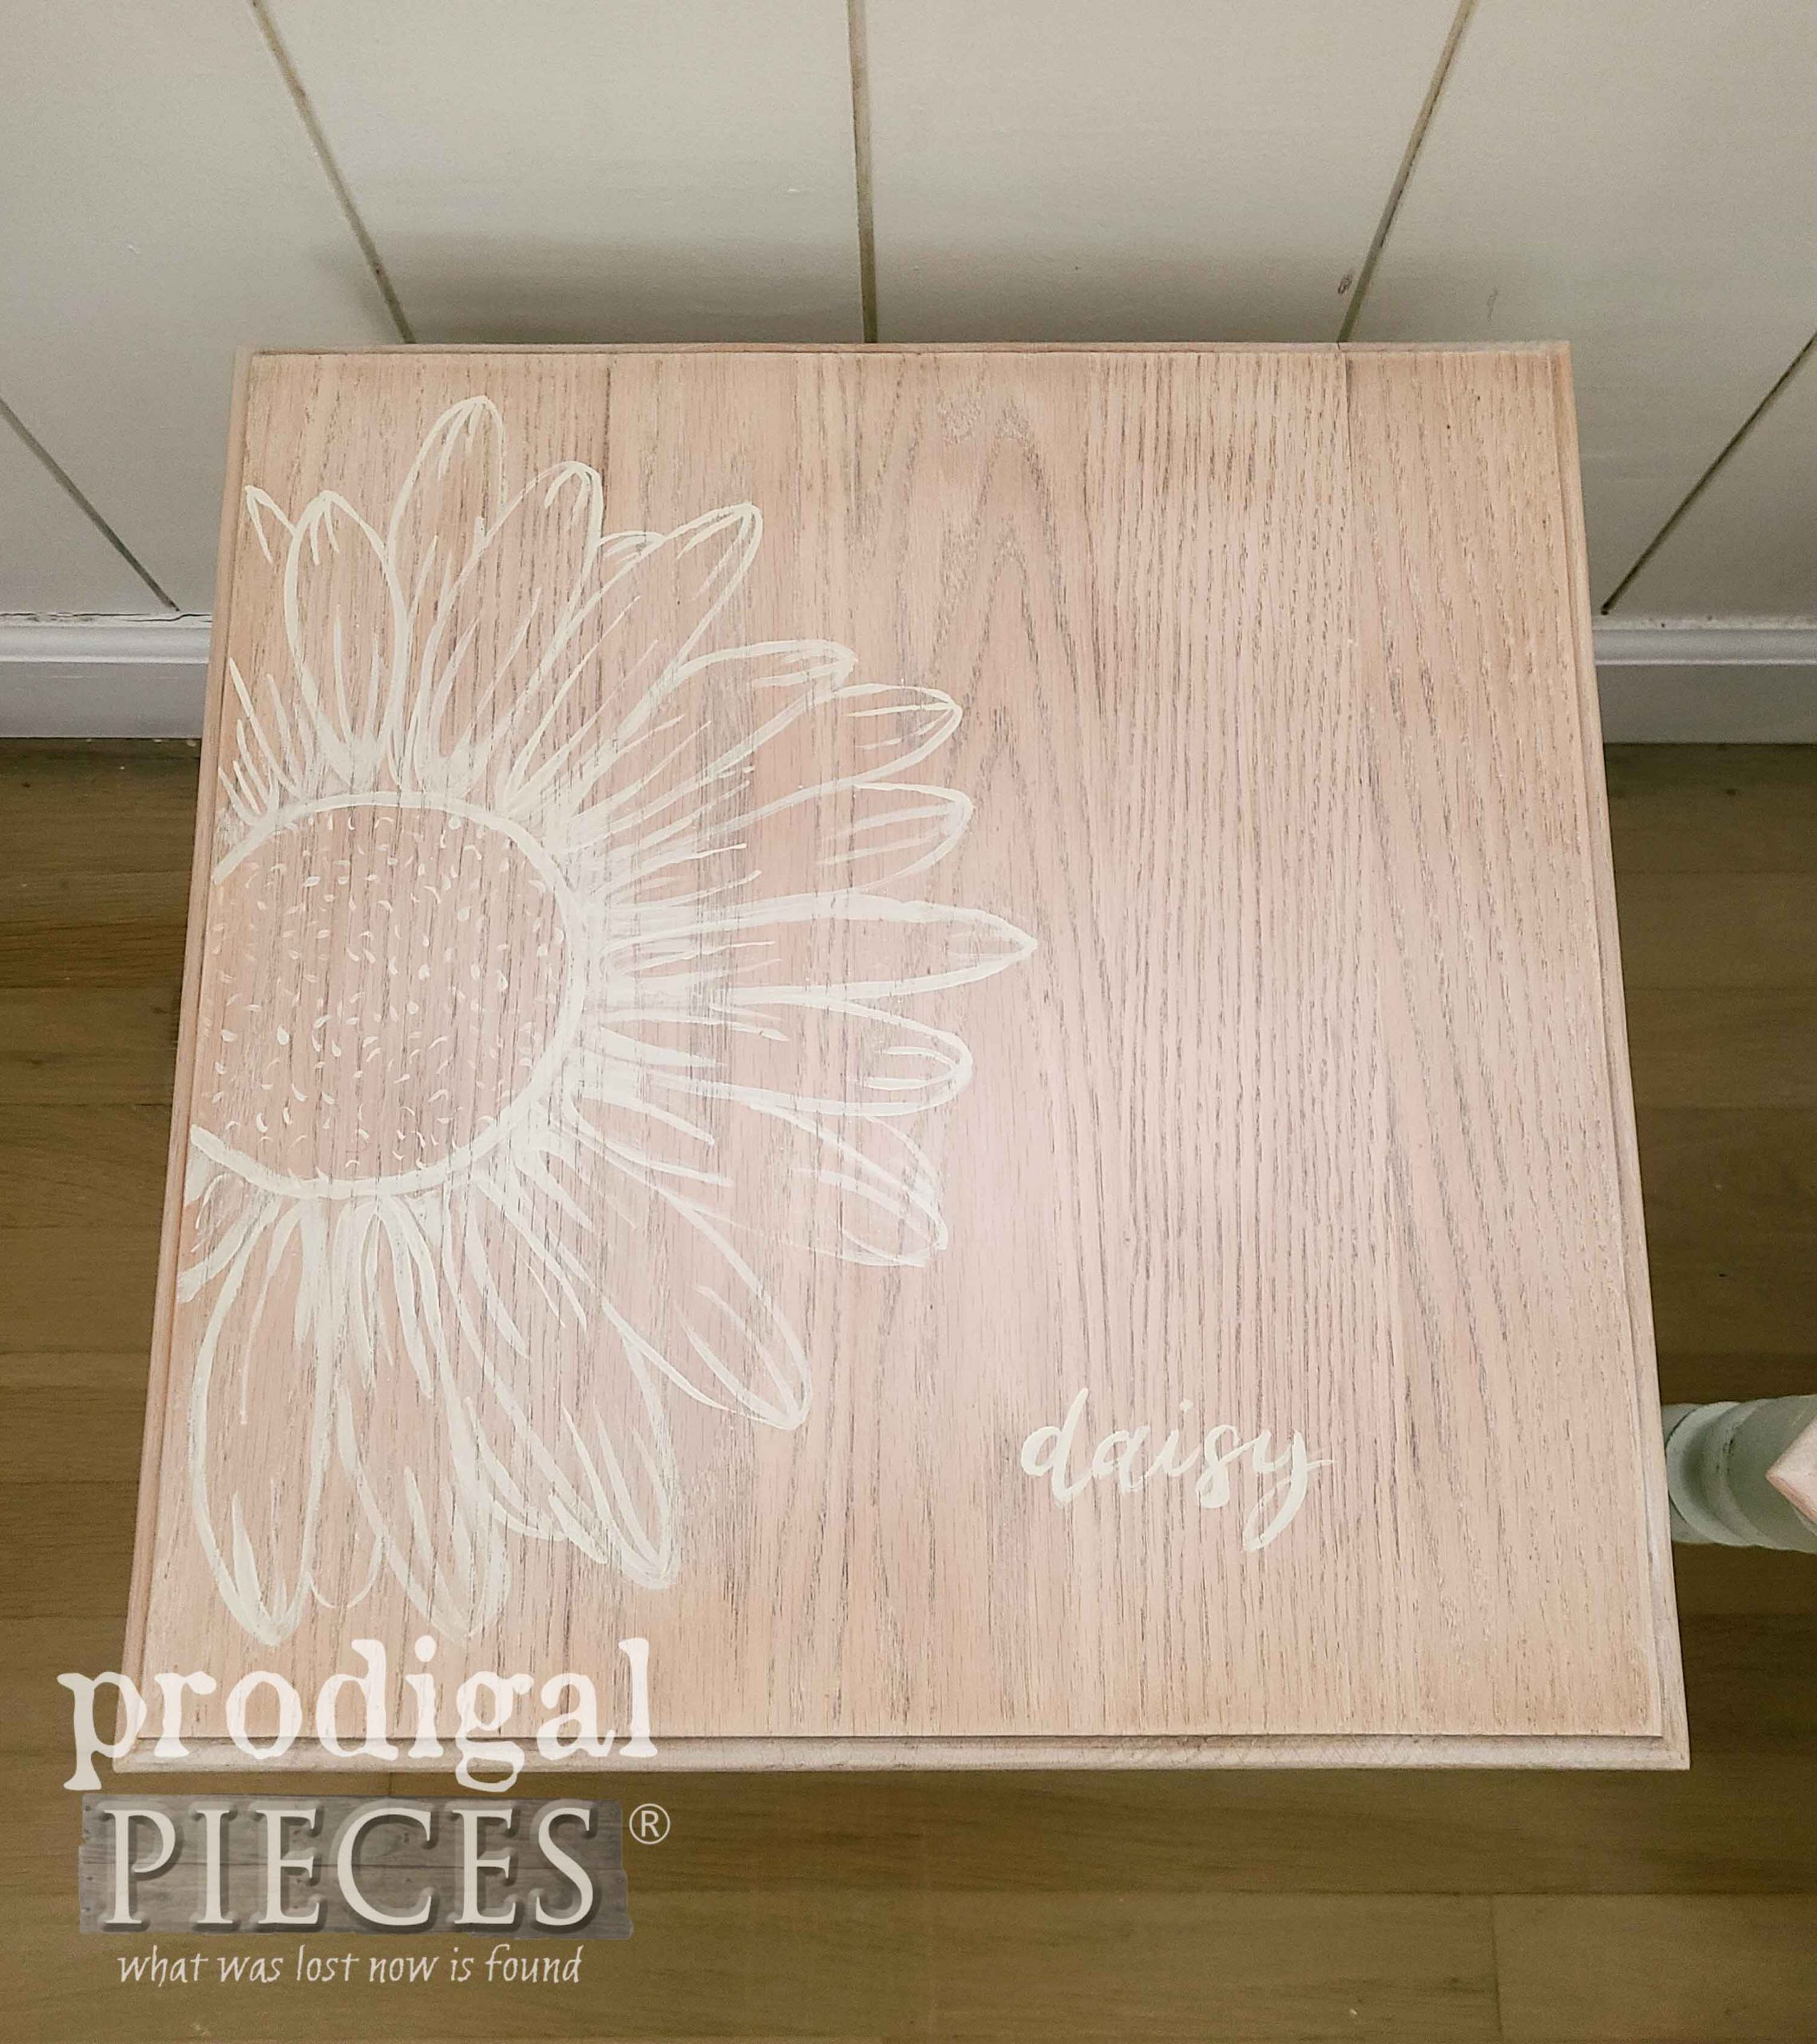 Hand-Painted Daisy Flower on Vintage Stacking Table by Larissa of Prodigal Pieces | prodigalpieces.com #prodigalpieces #furniture #art #diy